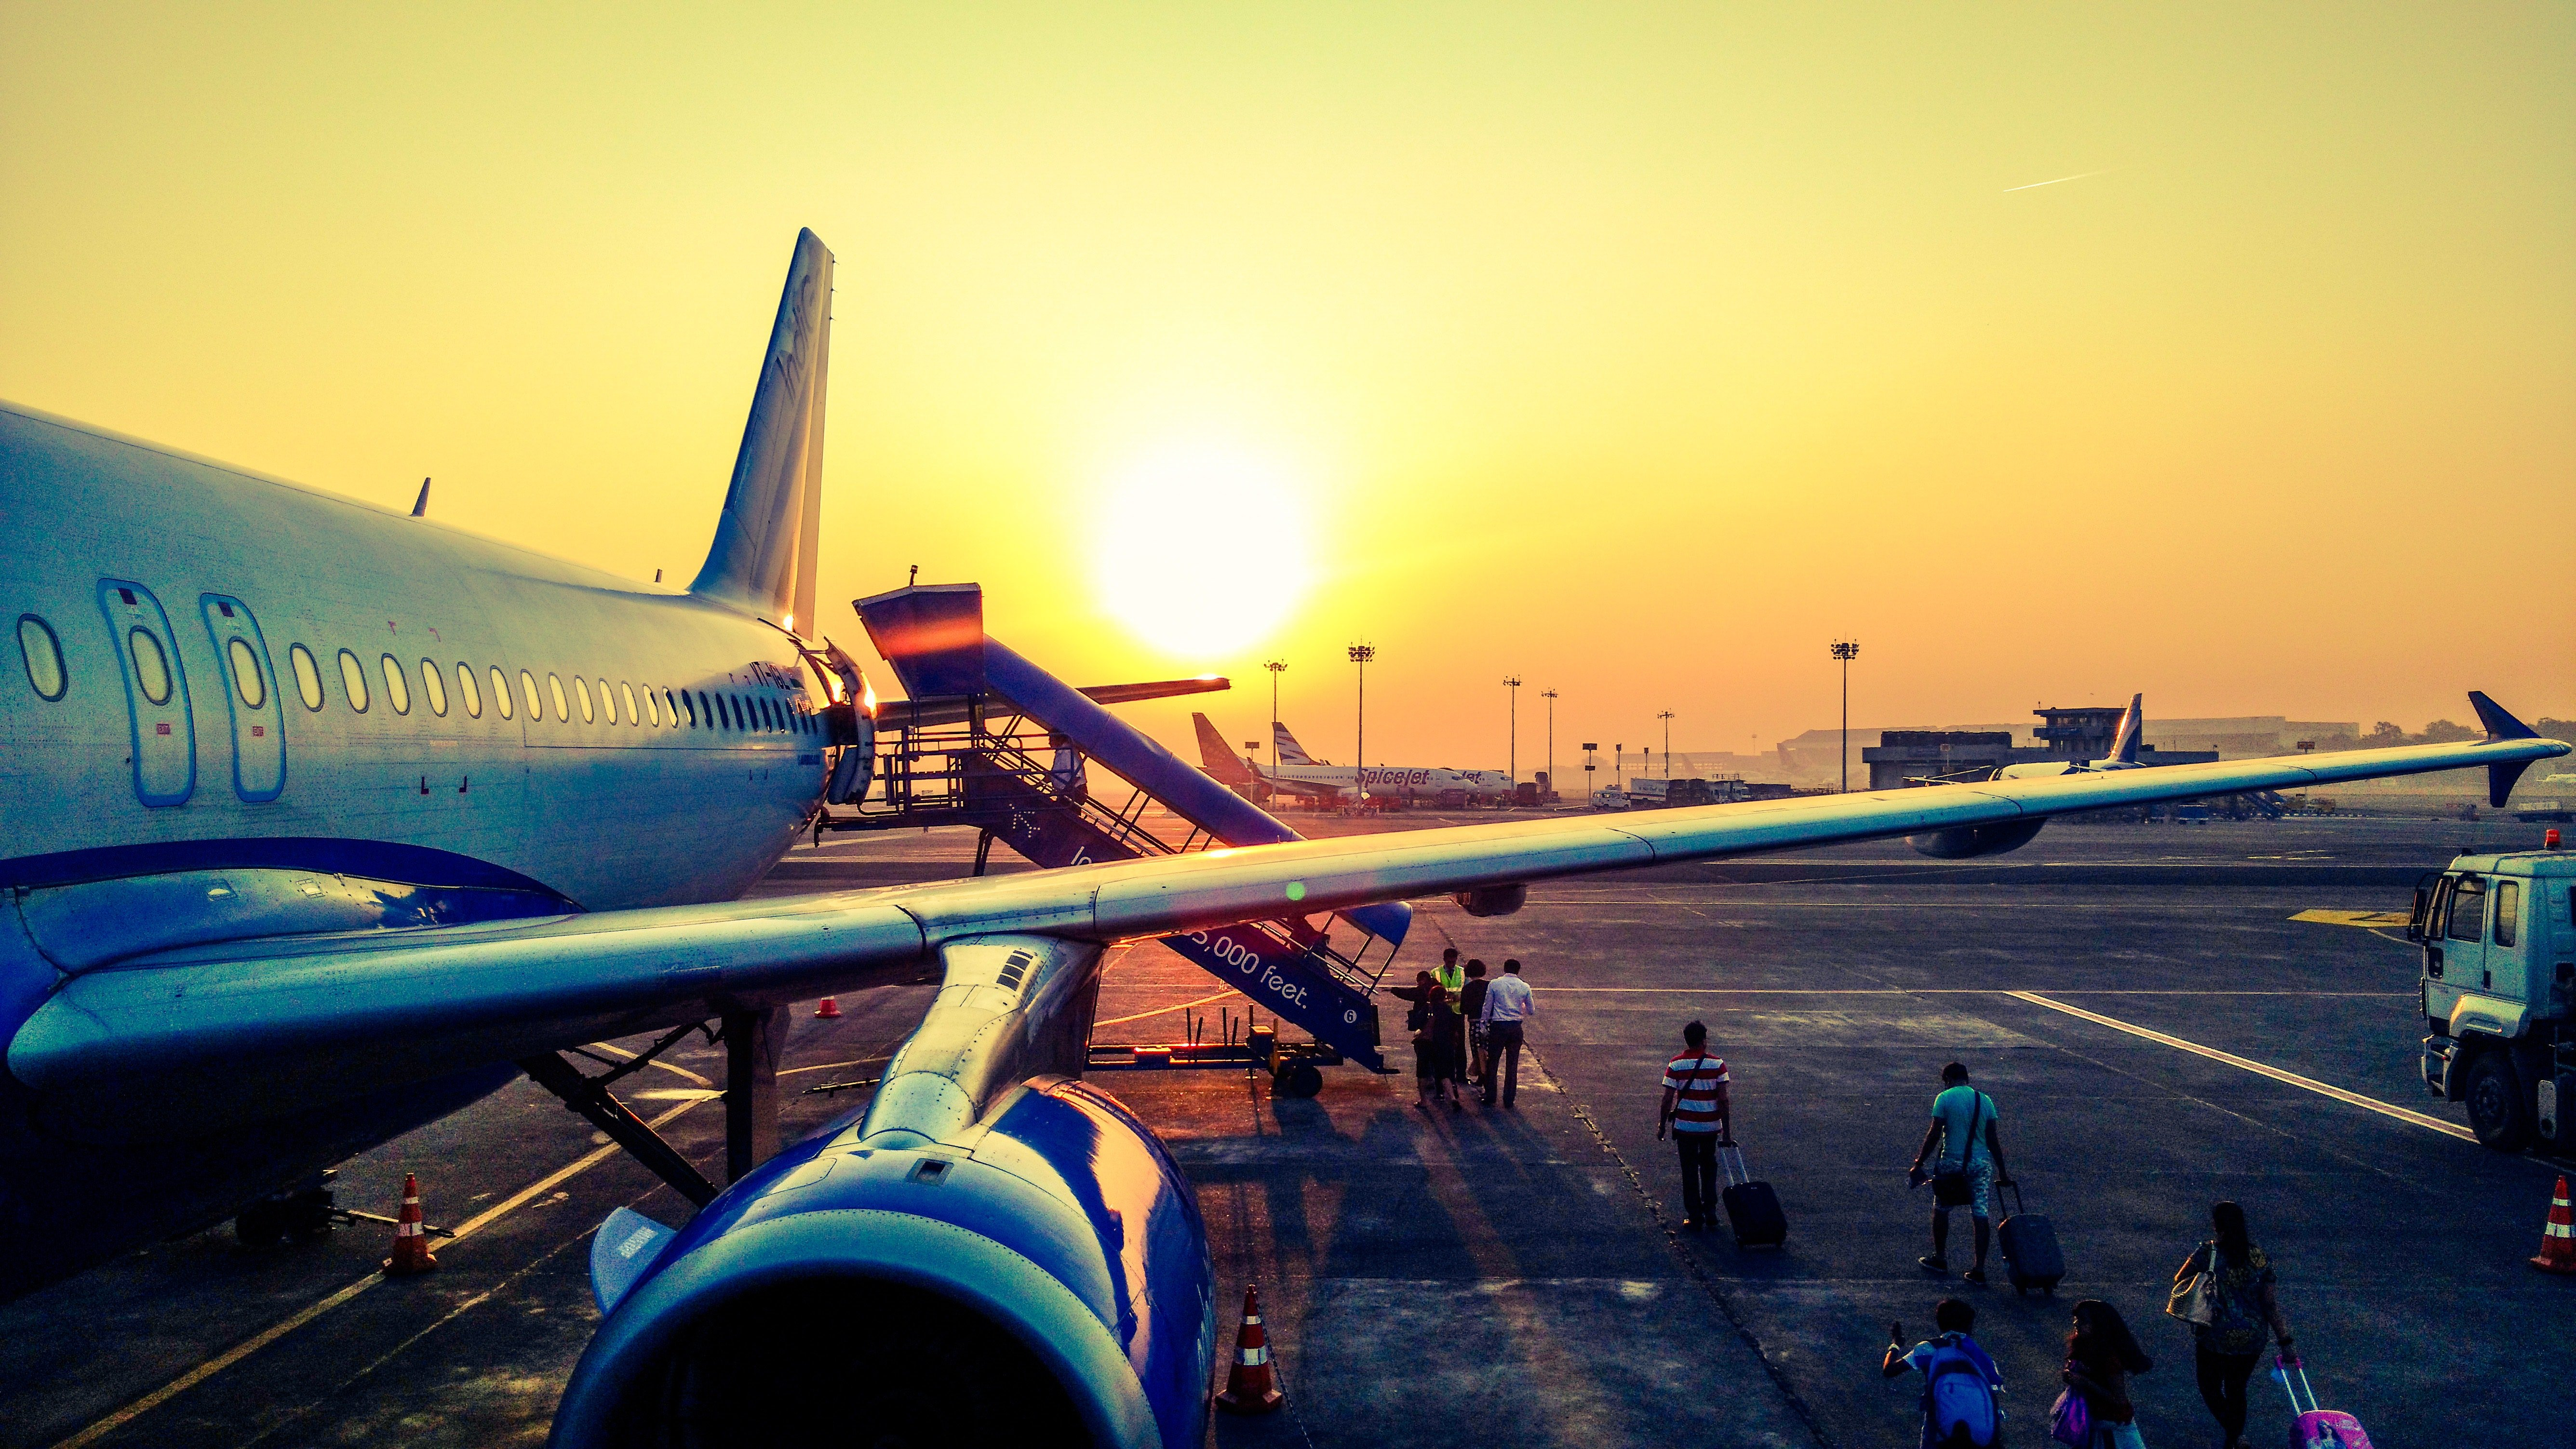 Pictured - Passengers boarding a plane | Source: Pexels